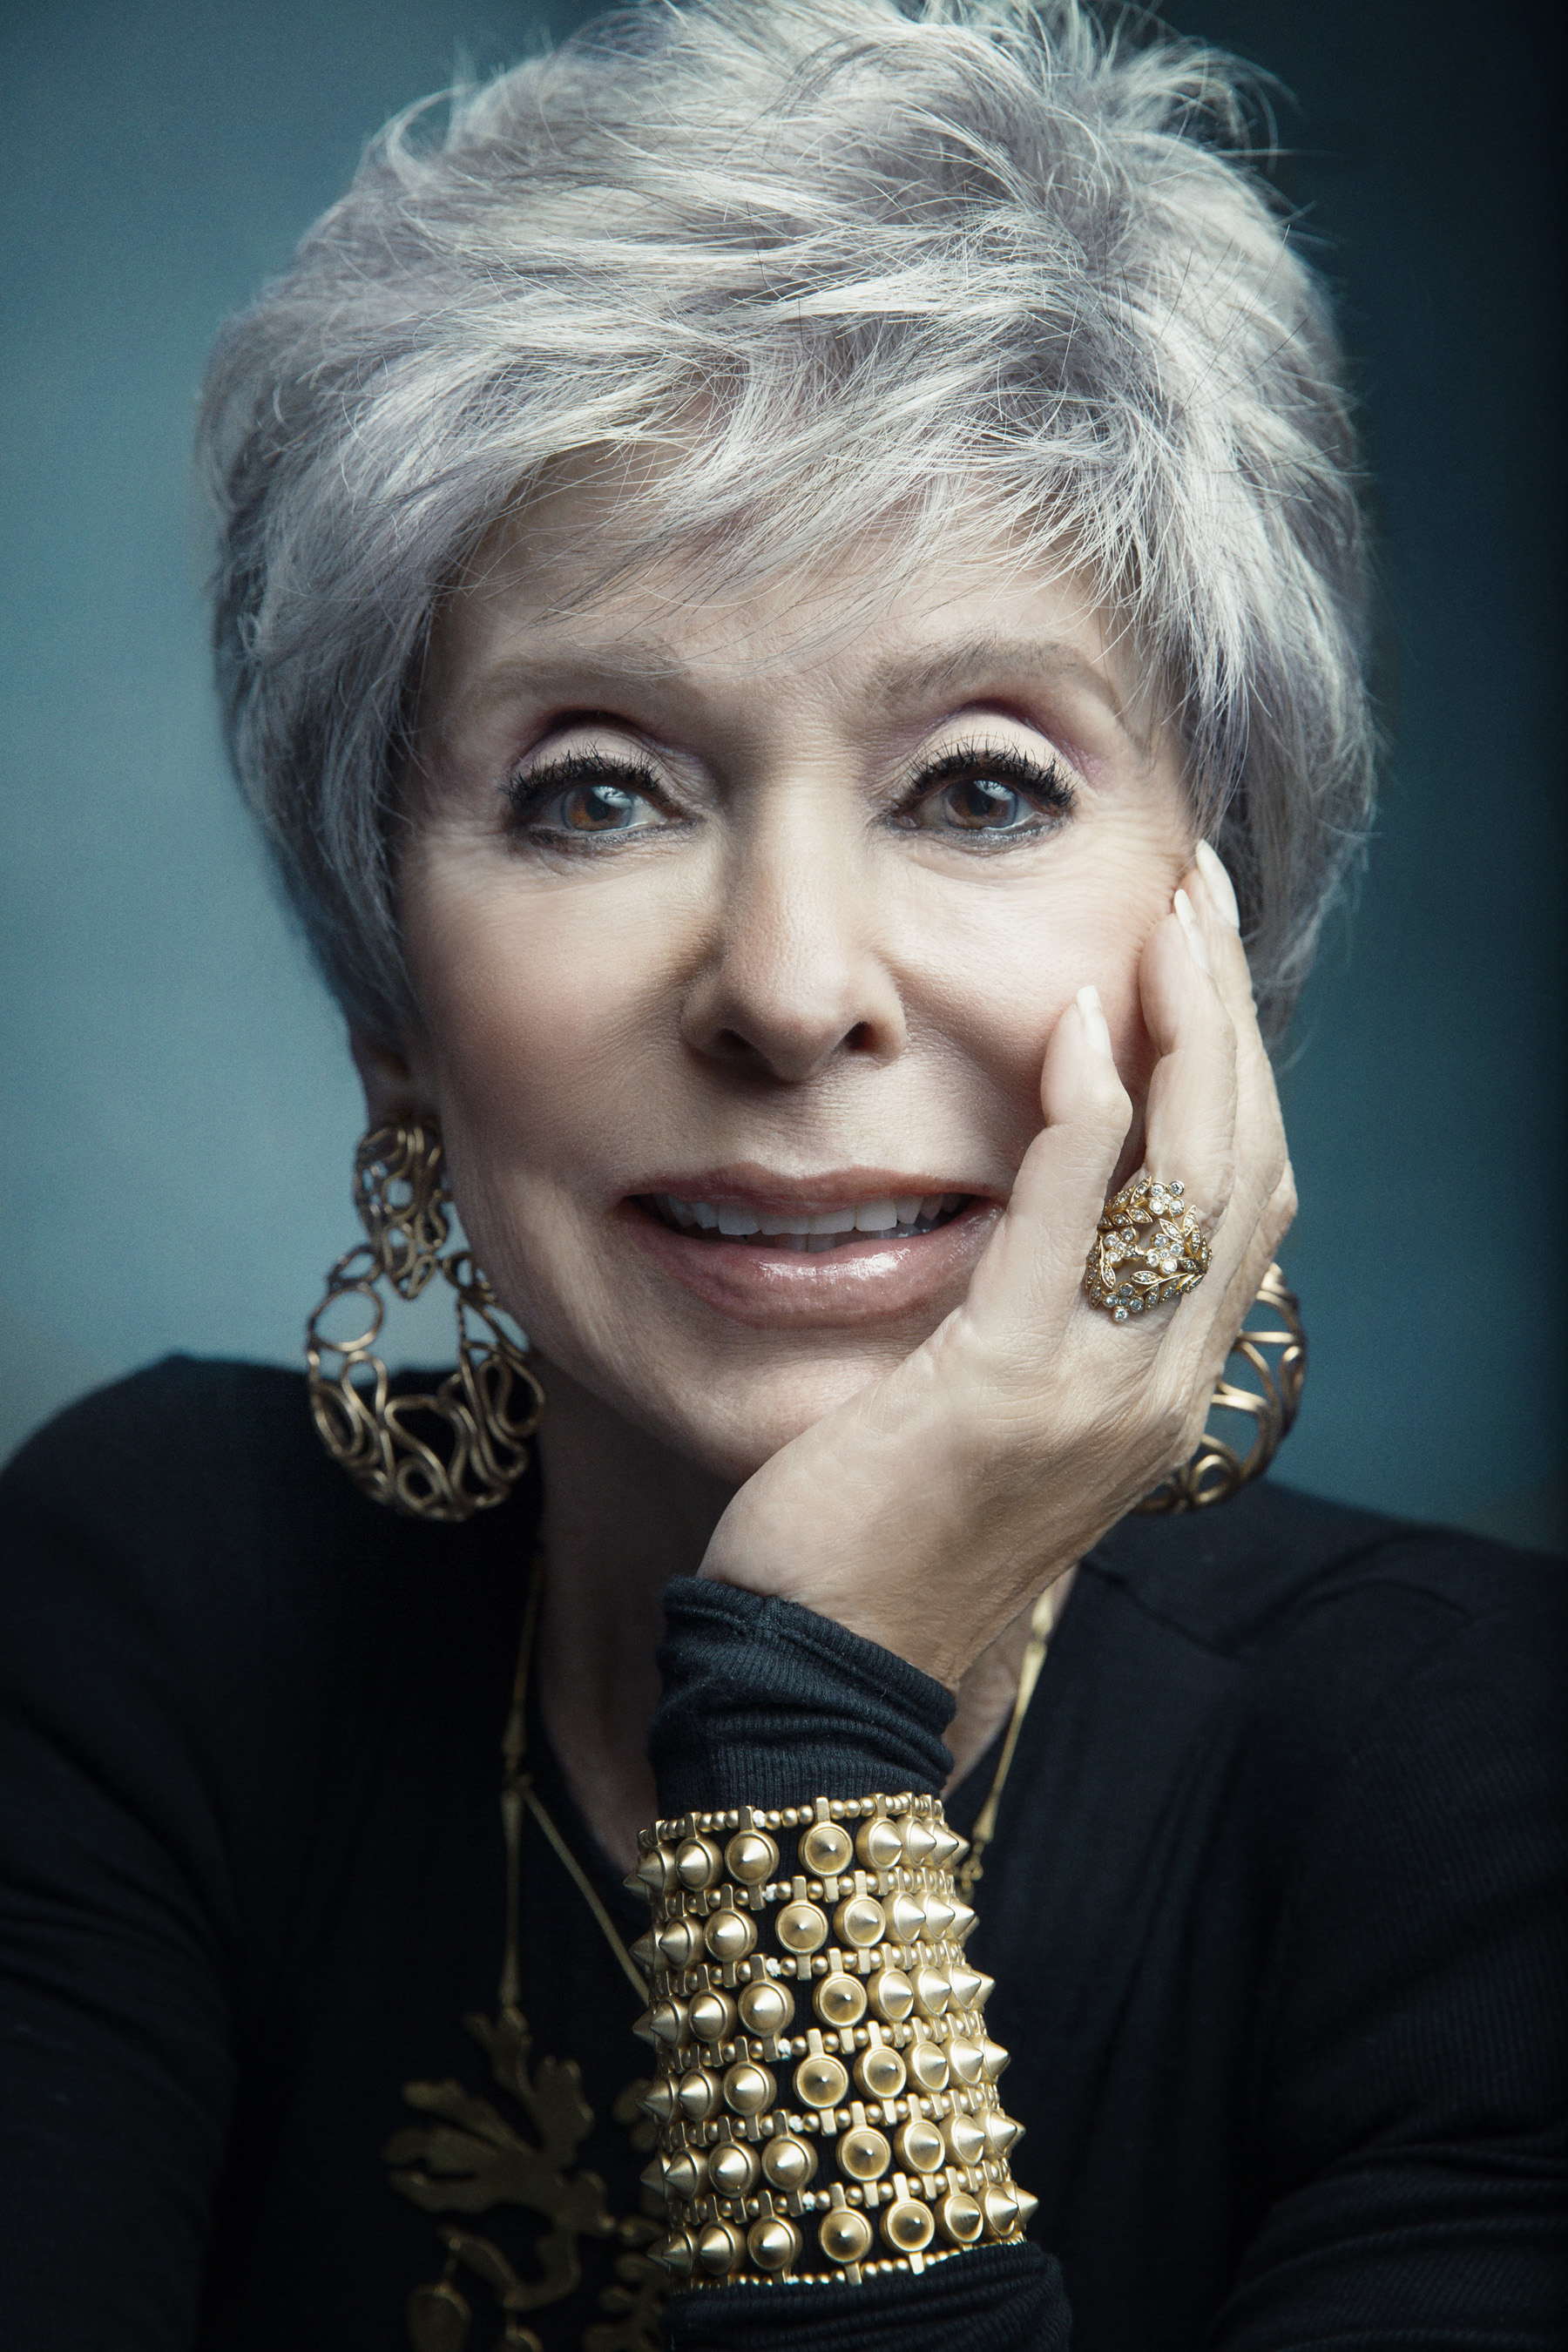 Rita Moreno teams up with Jane Walker by Johnnie Walker for First Women campaign celebrating and inspiring women breaking boundaries.